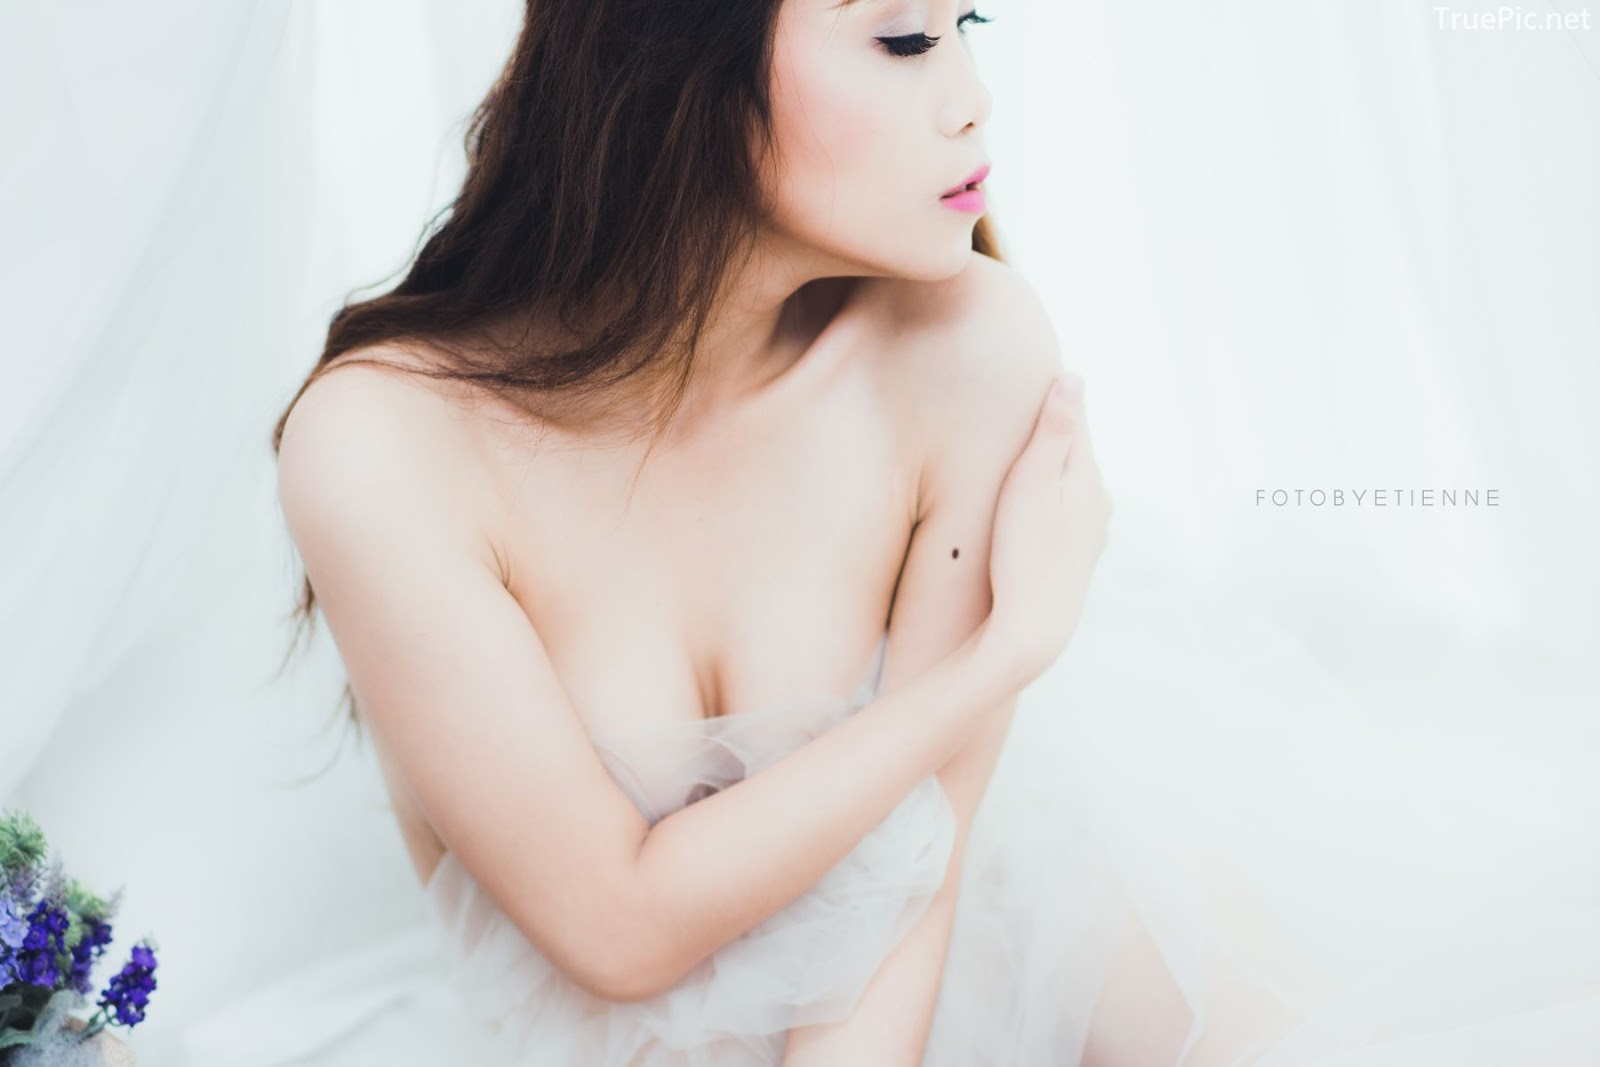 Super hot photos of Vietnamese beauties with lingerie and bikini - Photo by Le Blanc Studio - Part 4 - Picture 1